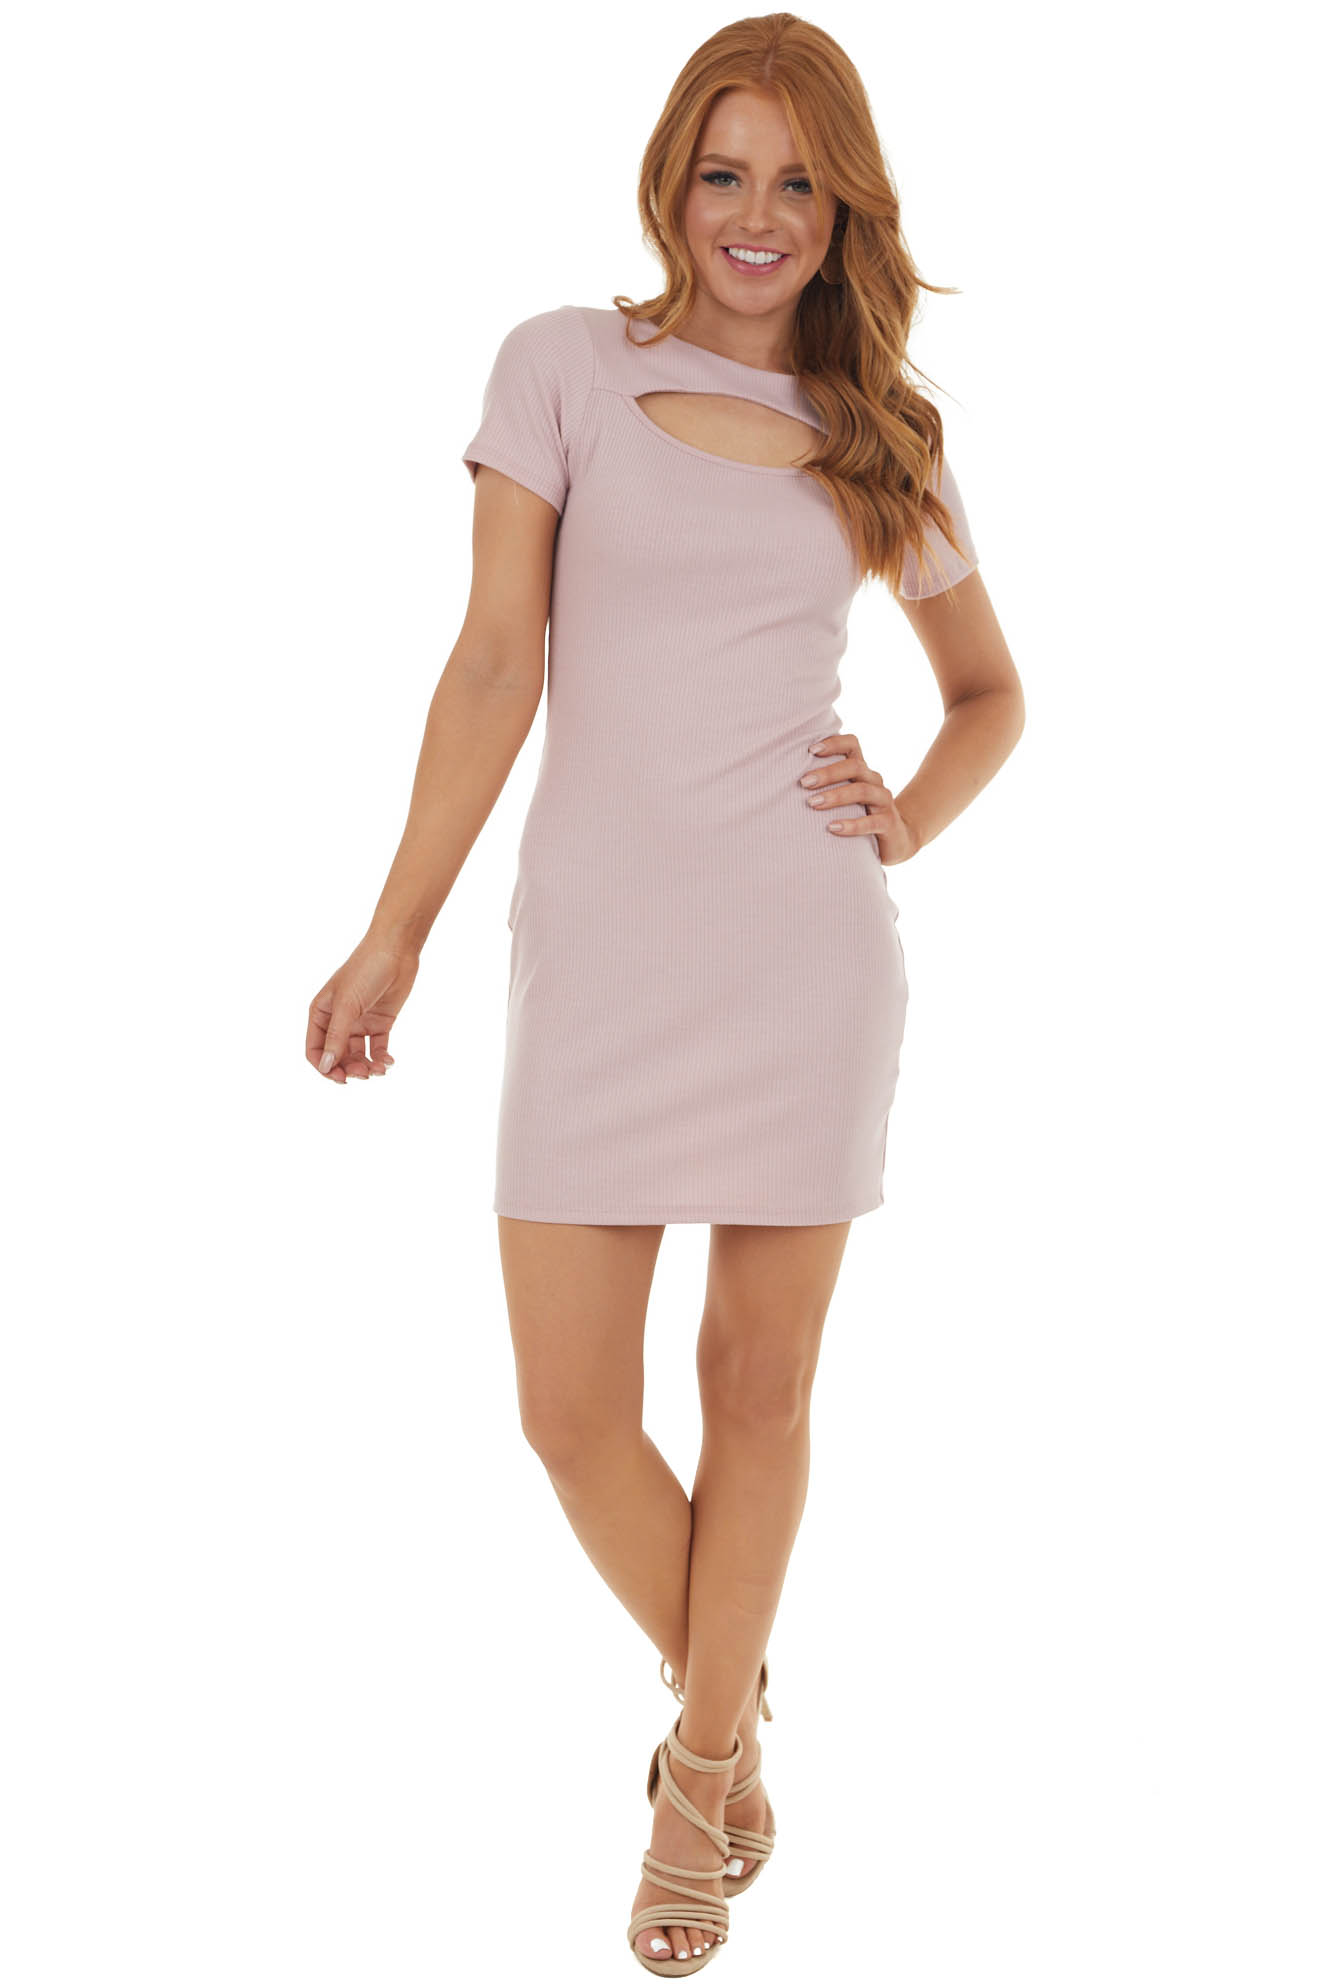 Dusty Blush Bodycon Ribbed Knit Dress with Cutout Detail  1